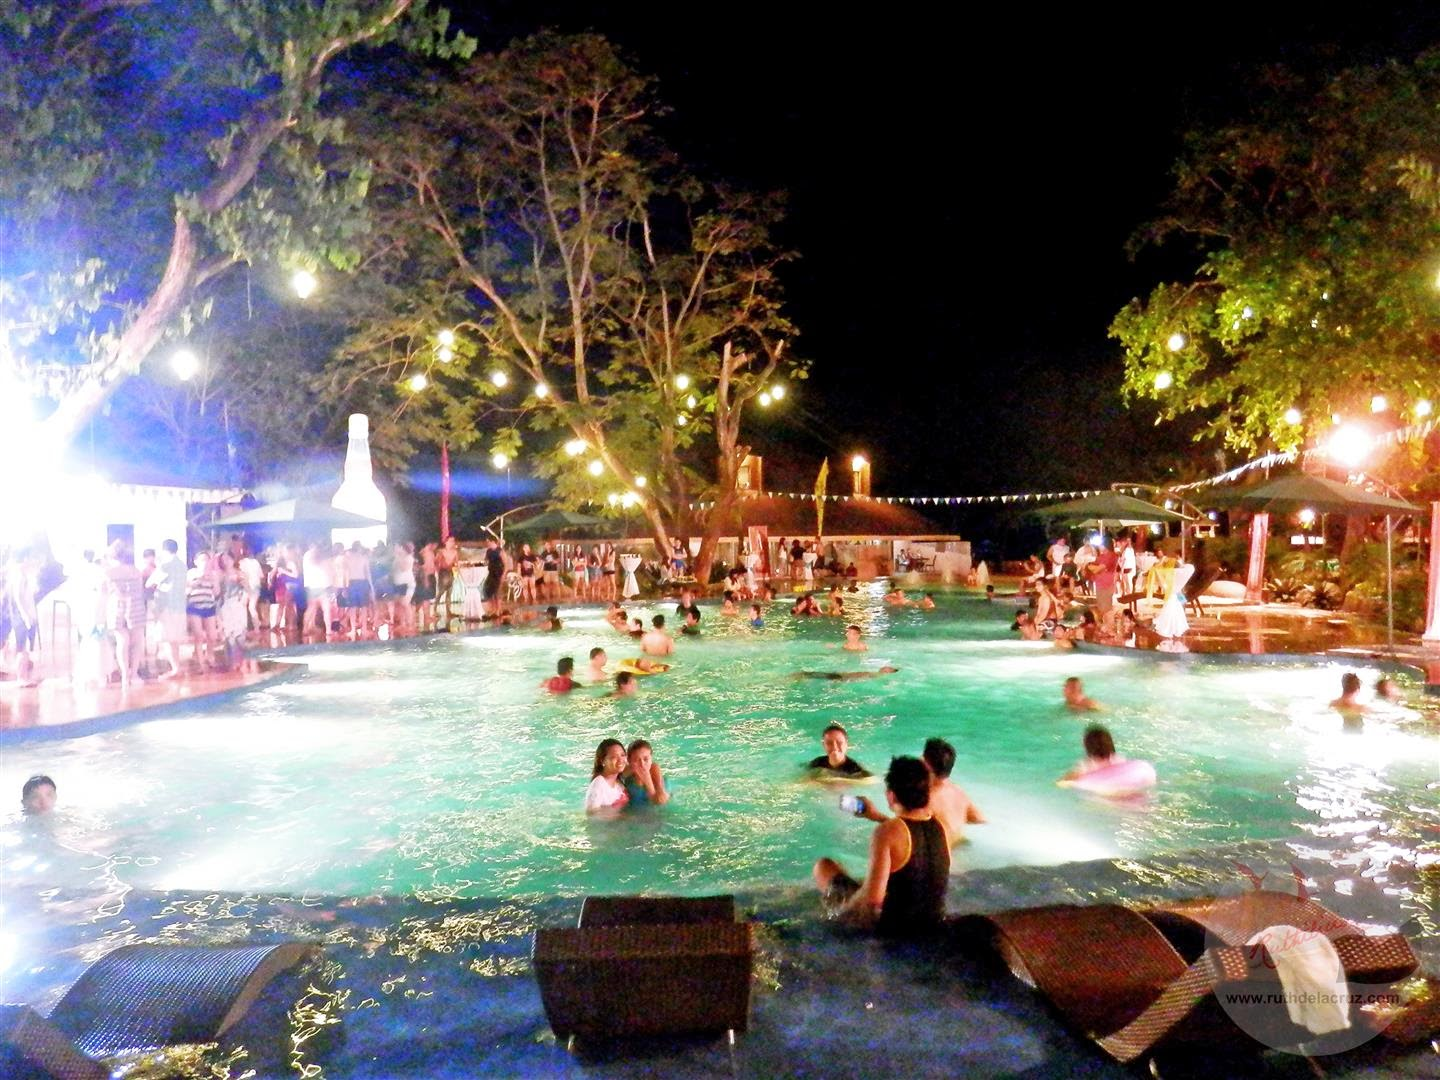 Looking For The Pools There Are 3 In Resort Official Launch Of Matabungkay Beach Was Held Poolside Were Dancing Lights